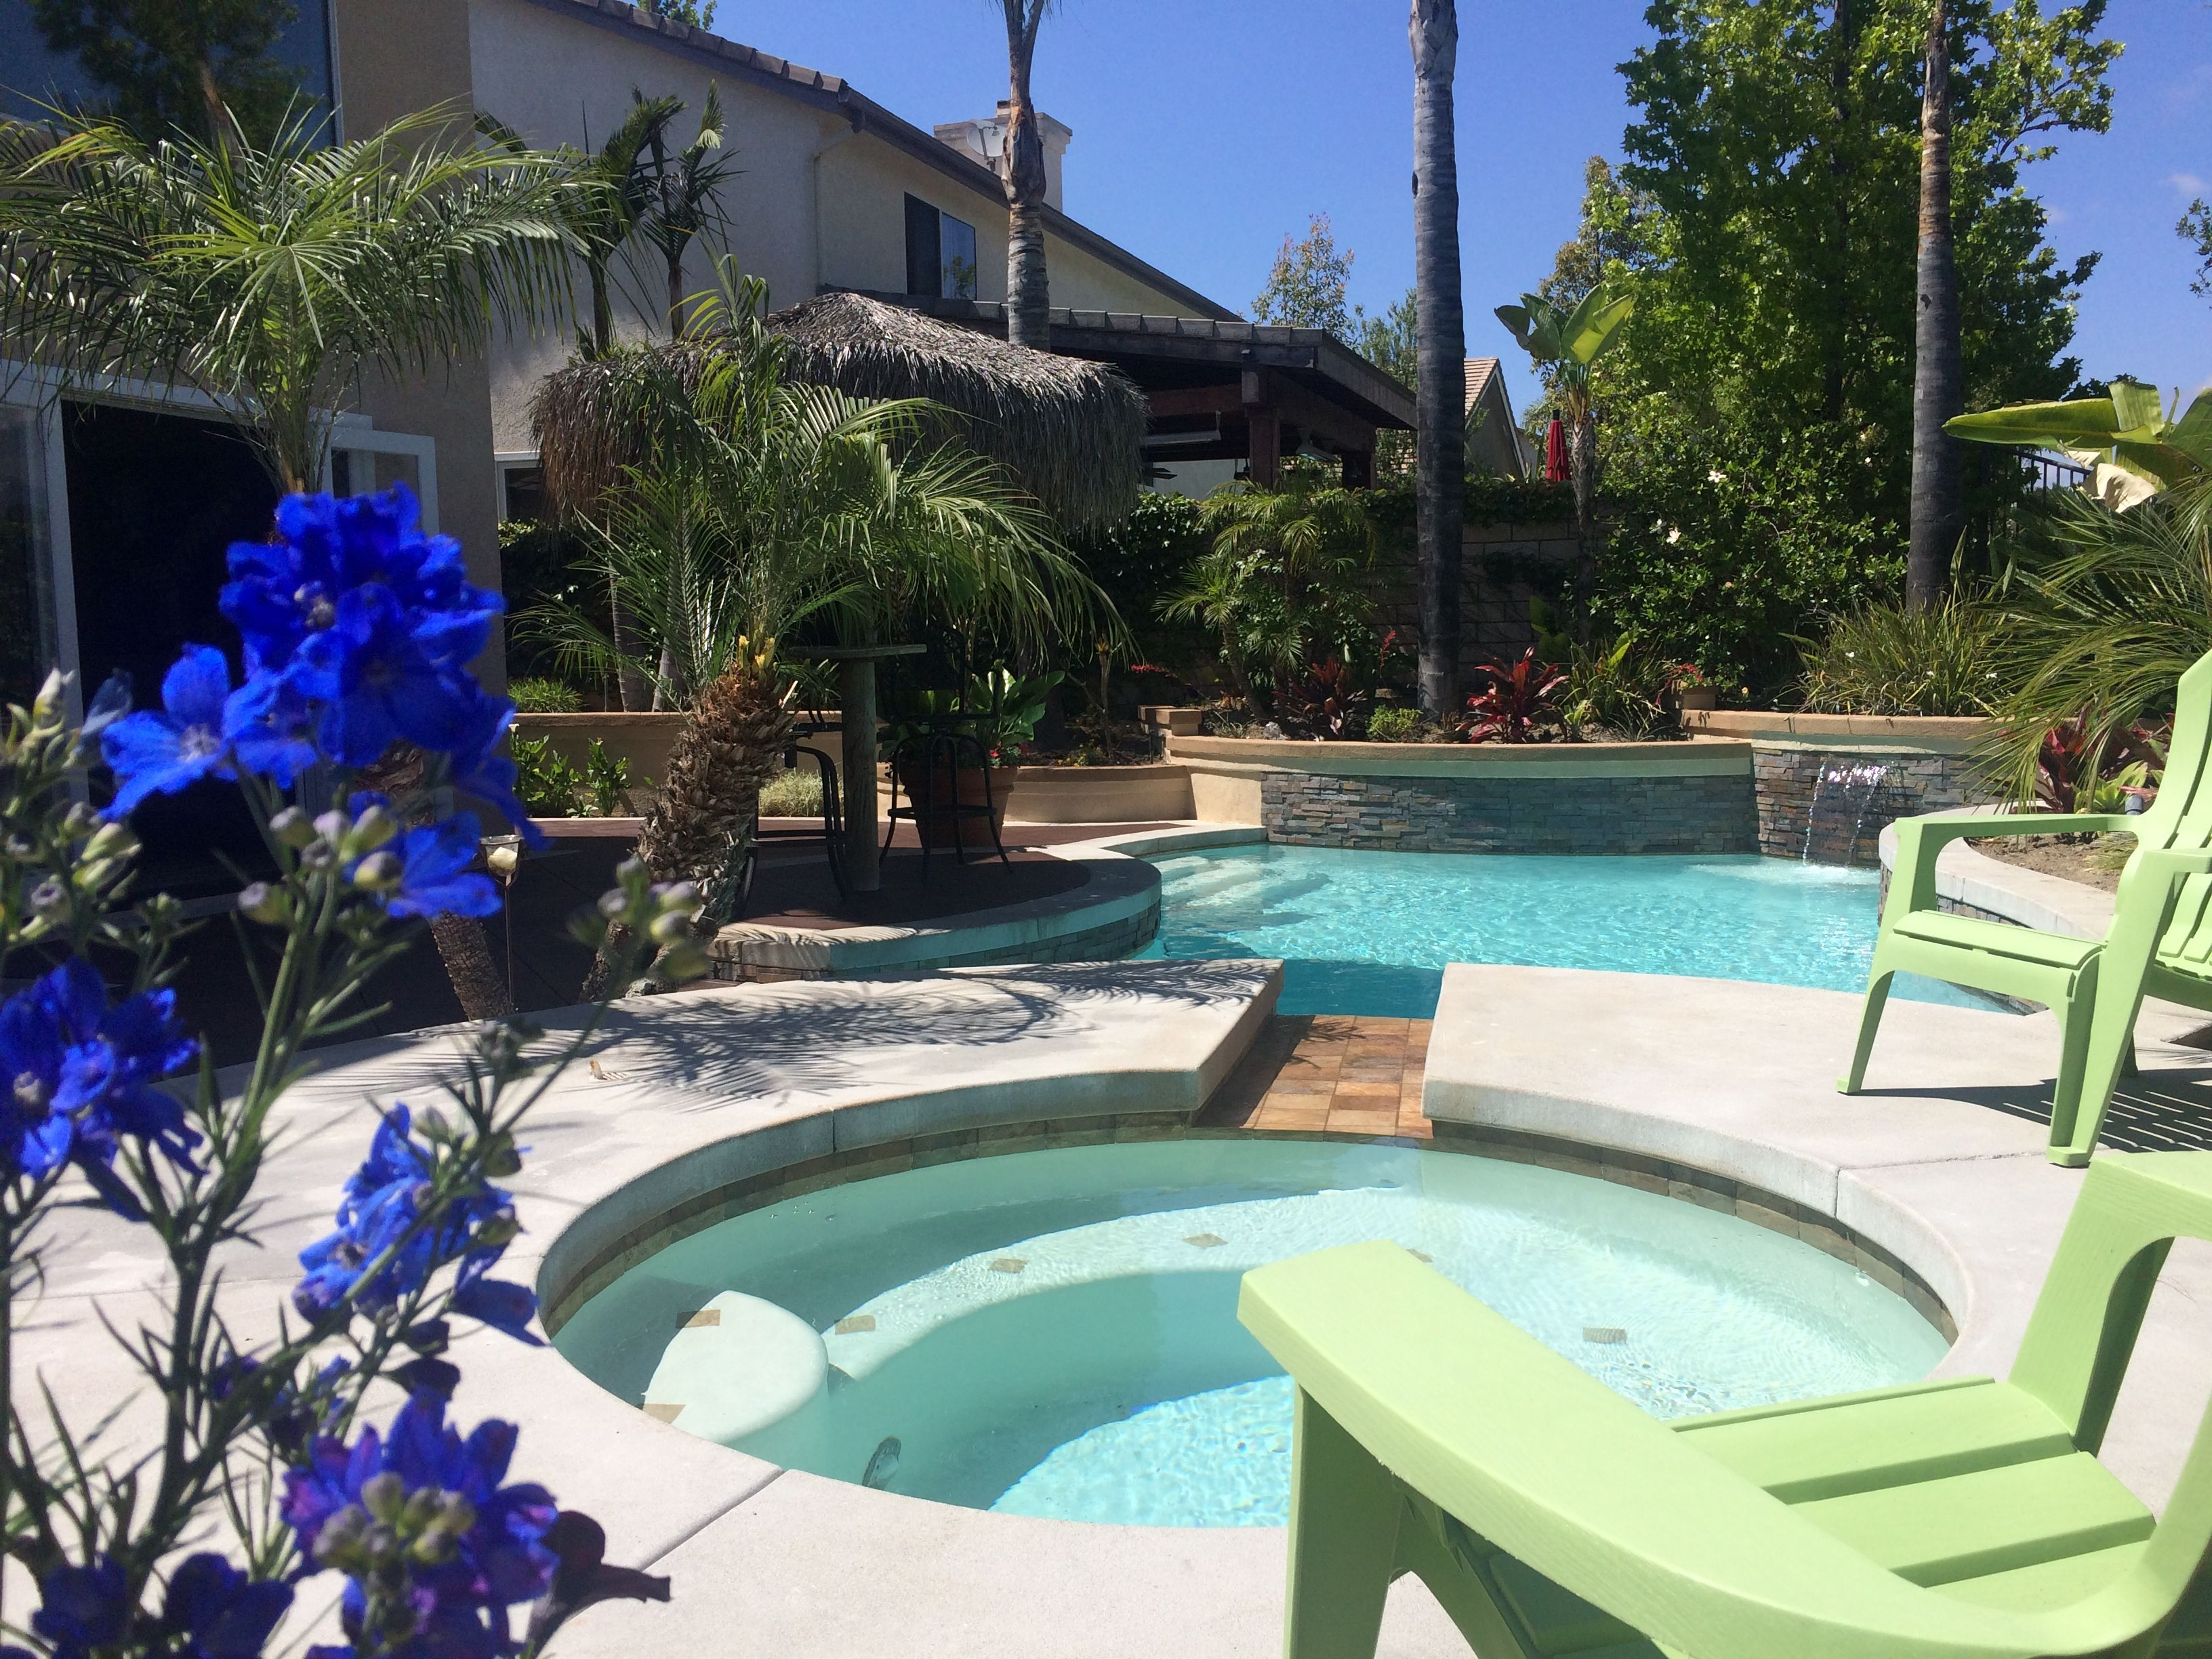 Entertain, Relax, Exercise, and ENJOY all the benefits of owning a home with a pool! There's also a community pool and spa!  For more info or for a private tour, call or text Tracey @ 949-842-3655.